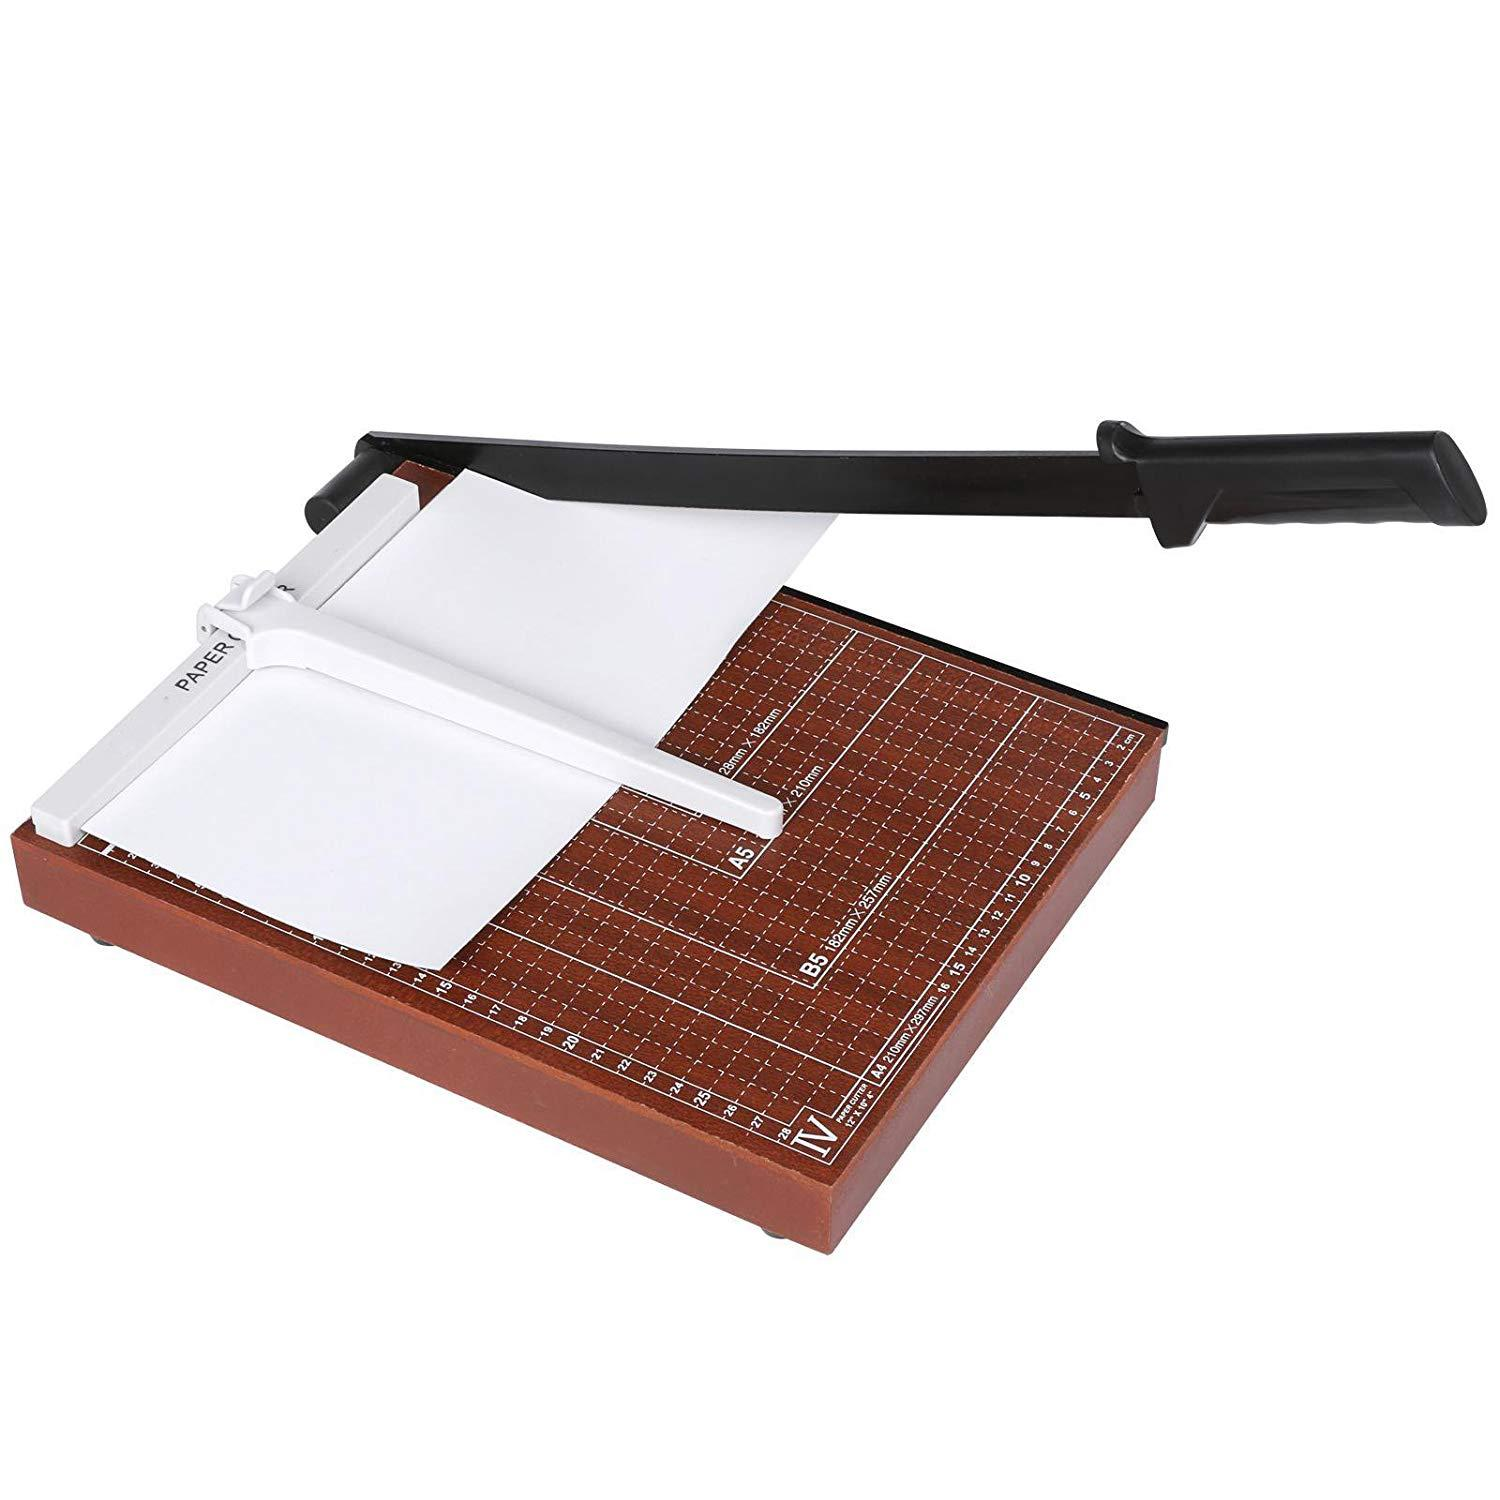 Wood Base Paper Cutter A4 Size PC-828-4